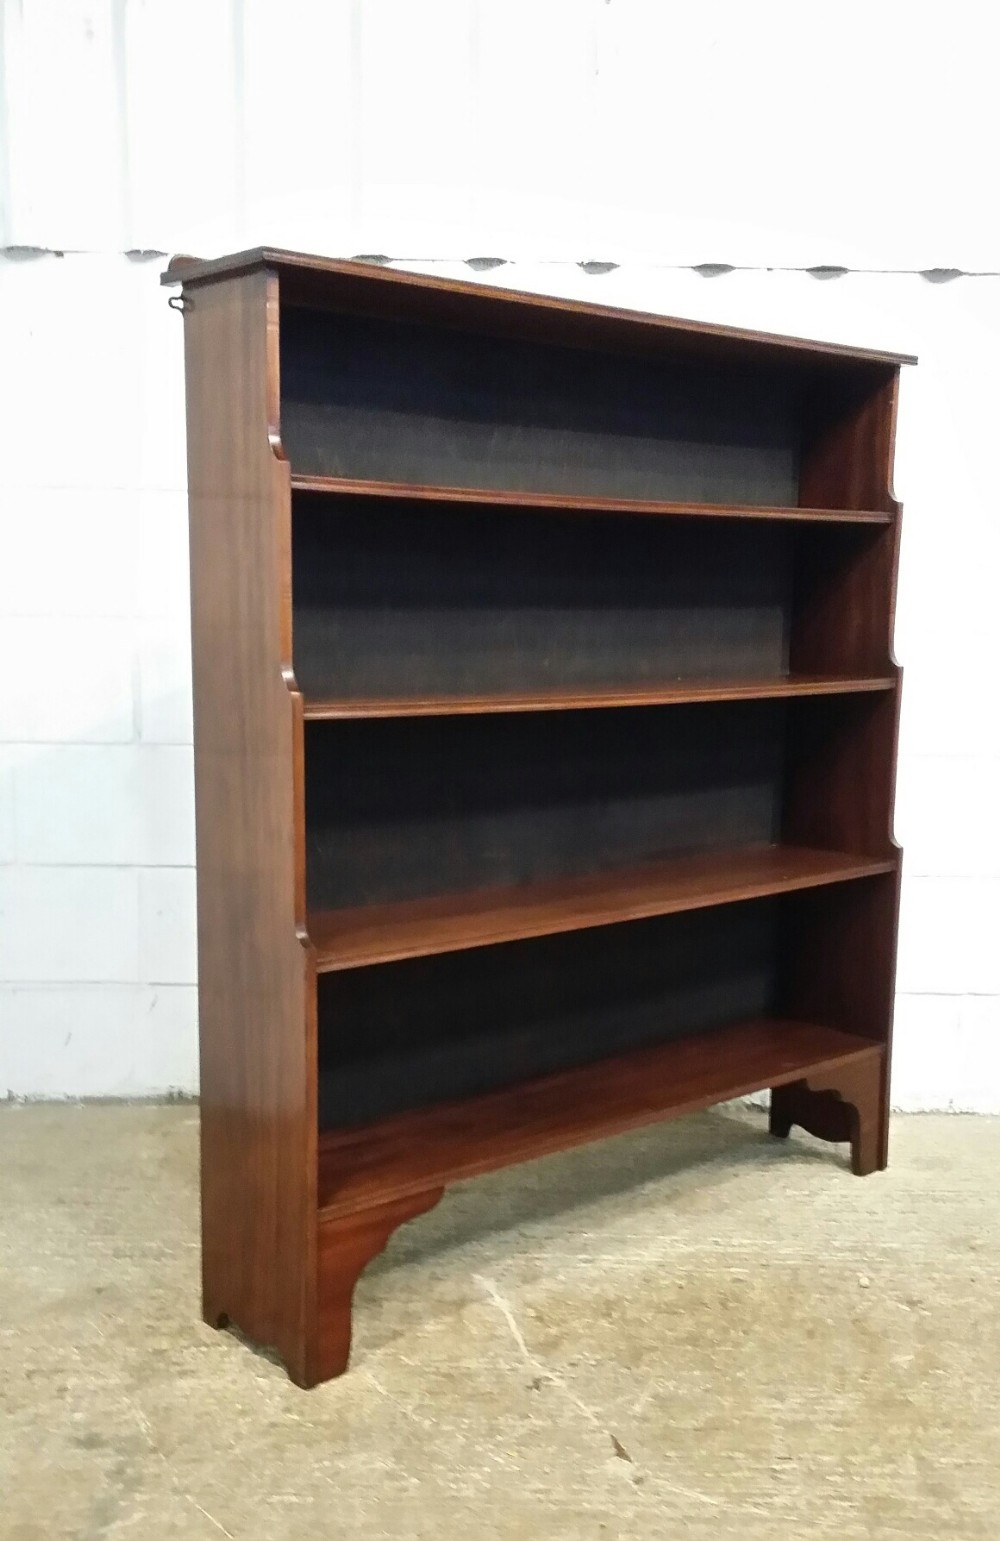 antique edwardian mahogany waterfall open bookcase c1900